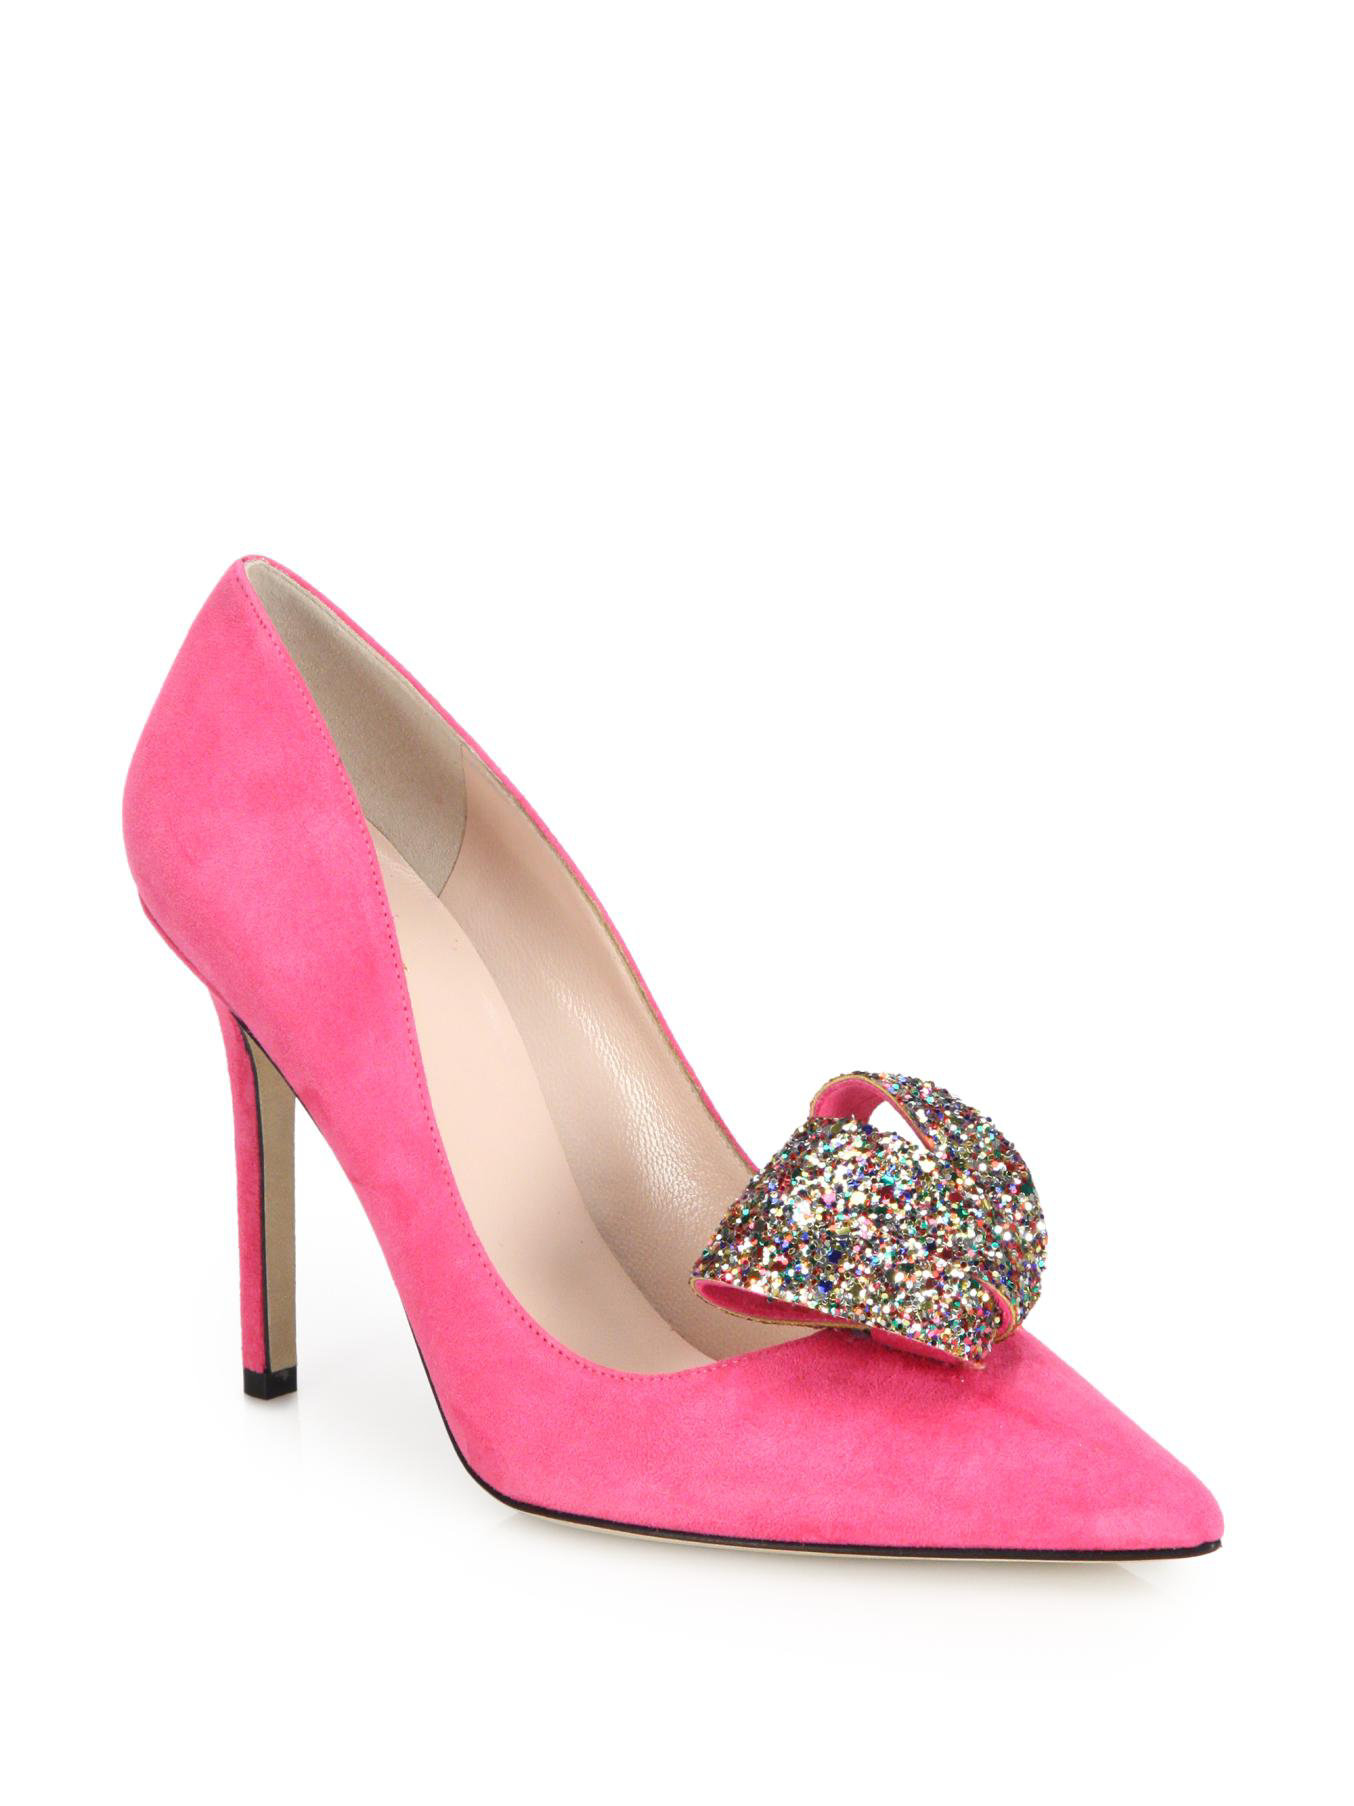 45398739a0 Kate Spade Louisa Glitter Bow Suede Pumps in Pink - Lyst